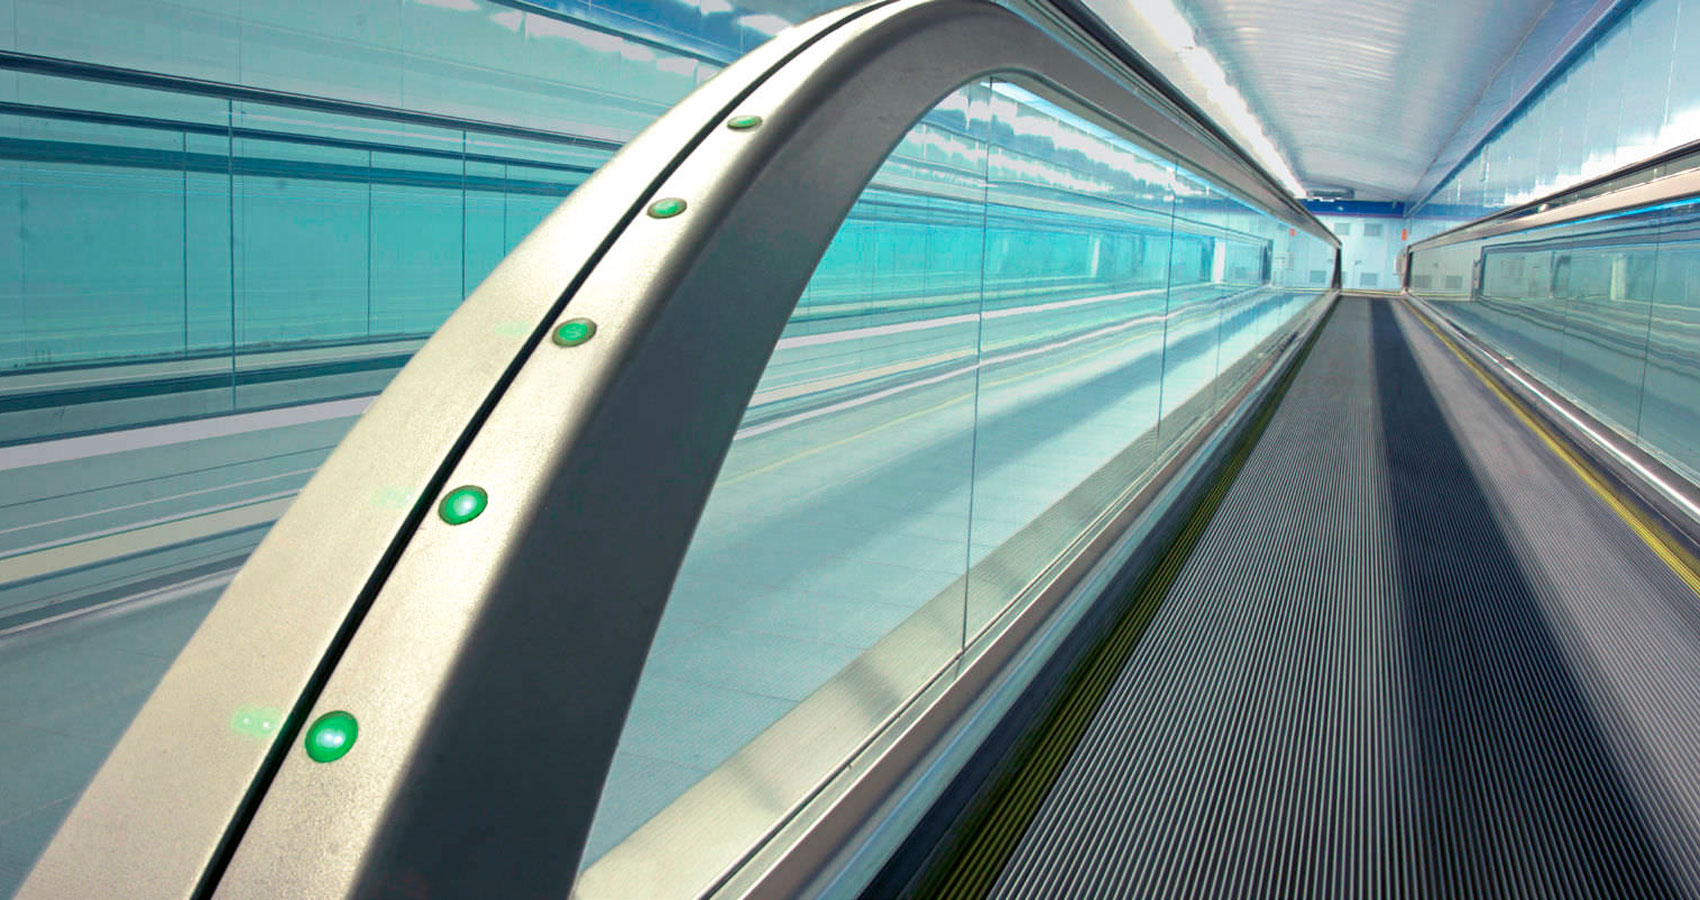 THE MOVING WALKWAY by TM DiSarro at Spillwords.com